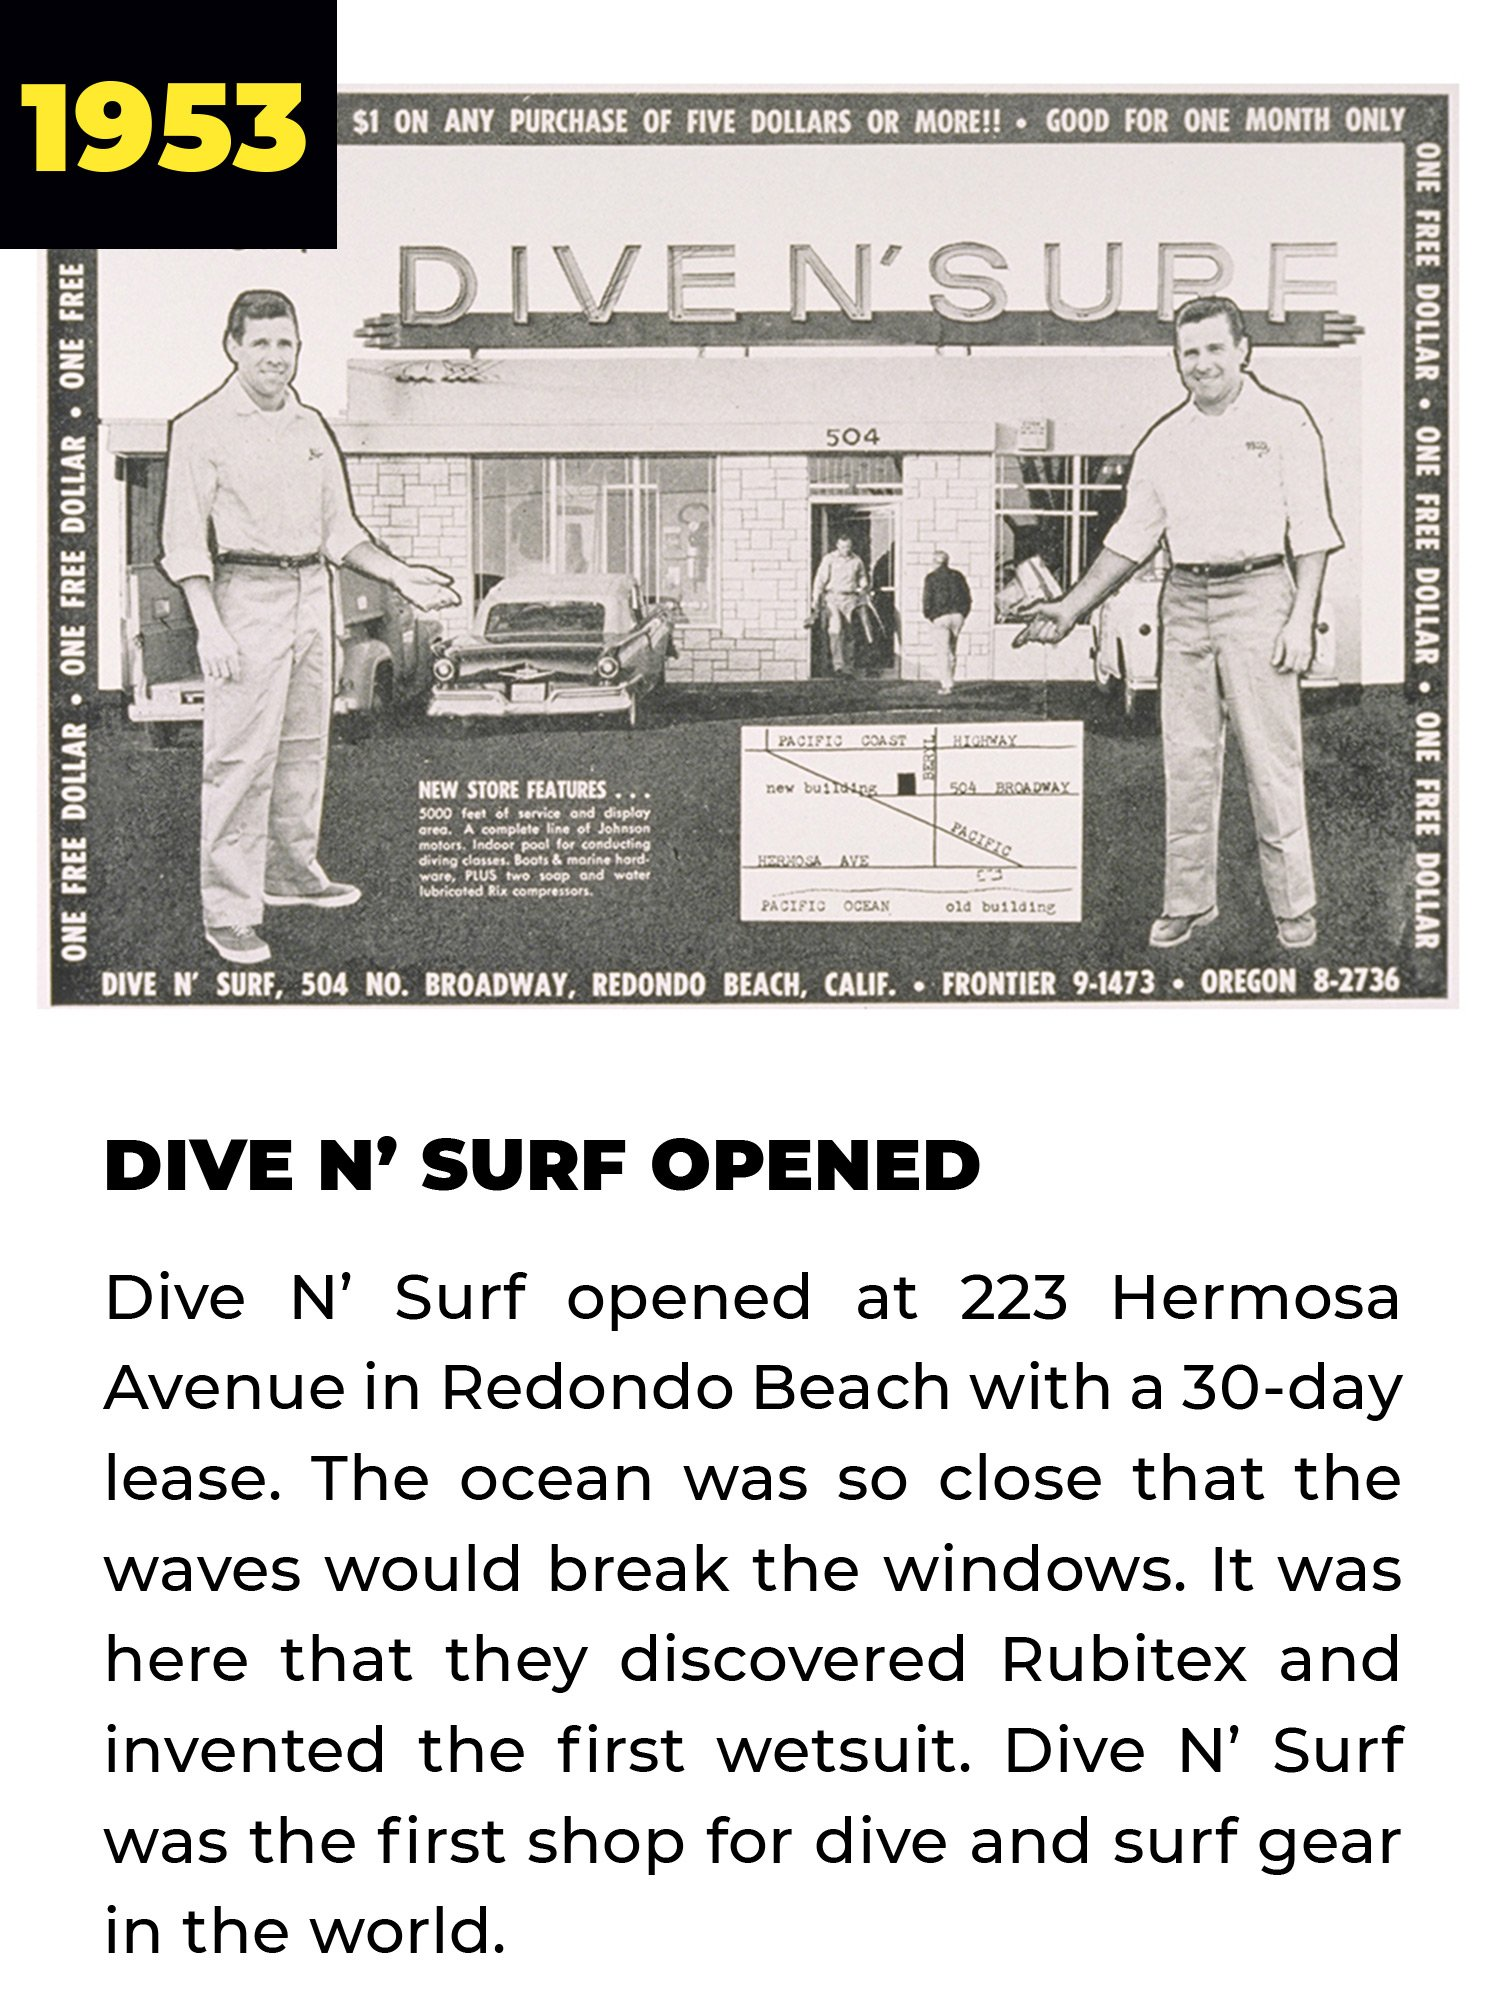 1953 | Dive N' Surf Opened | Dive N' Surf opened at 223 Hermosa Avenue in Redondo Beach with a 30-day lease. The ocean was so close that the waves would break the windows. It was here that they discovered Rubitex and invented the first wetsuit. Dive N' Surf was the first shop for dive and surf gear in the world.